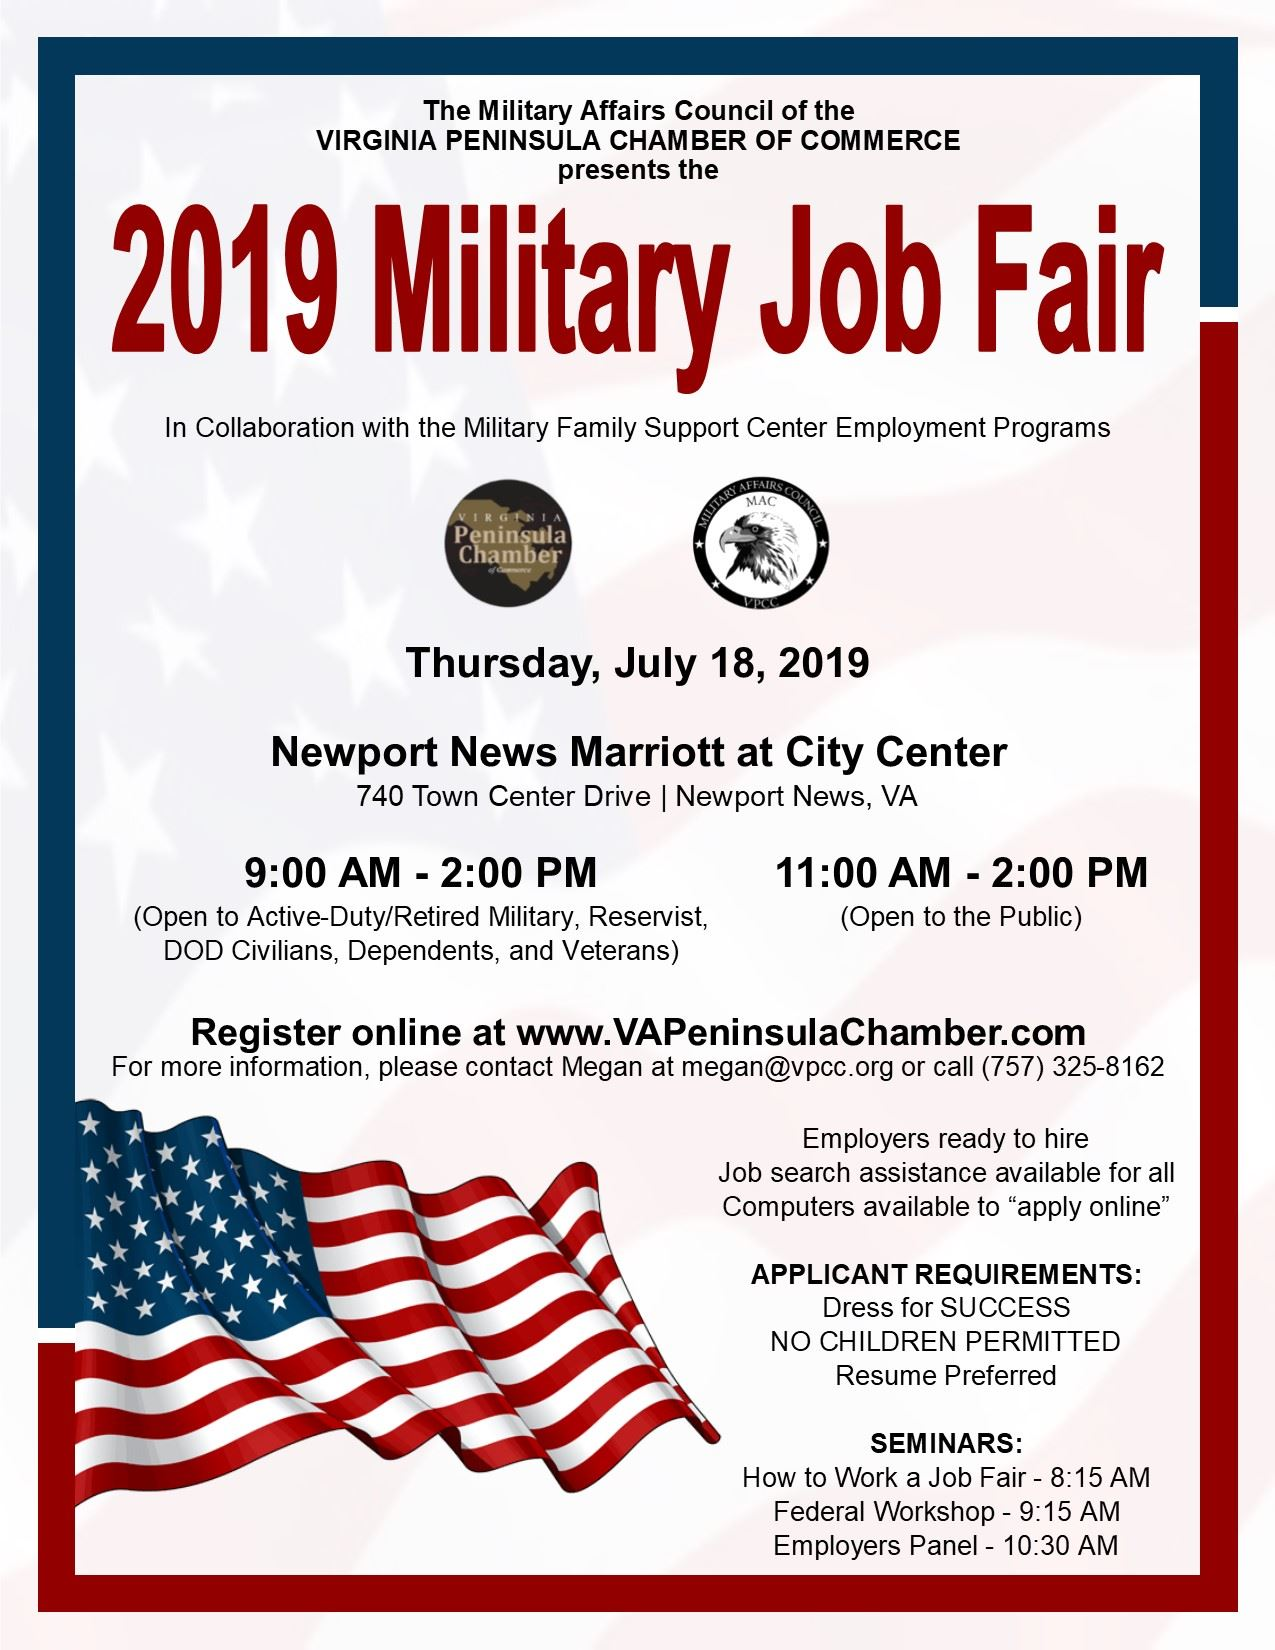 2019 Military Job Fair Flyer Opens in new window